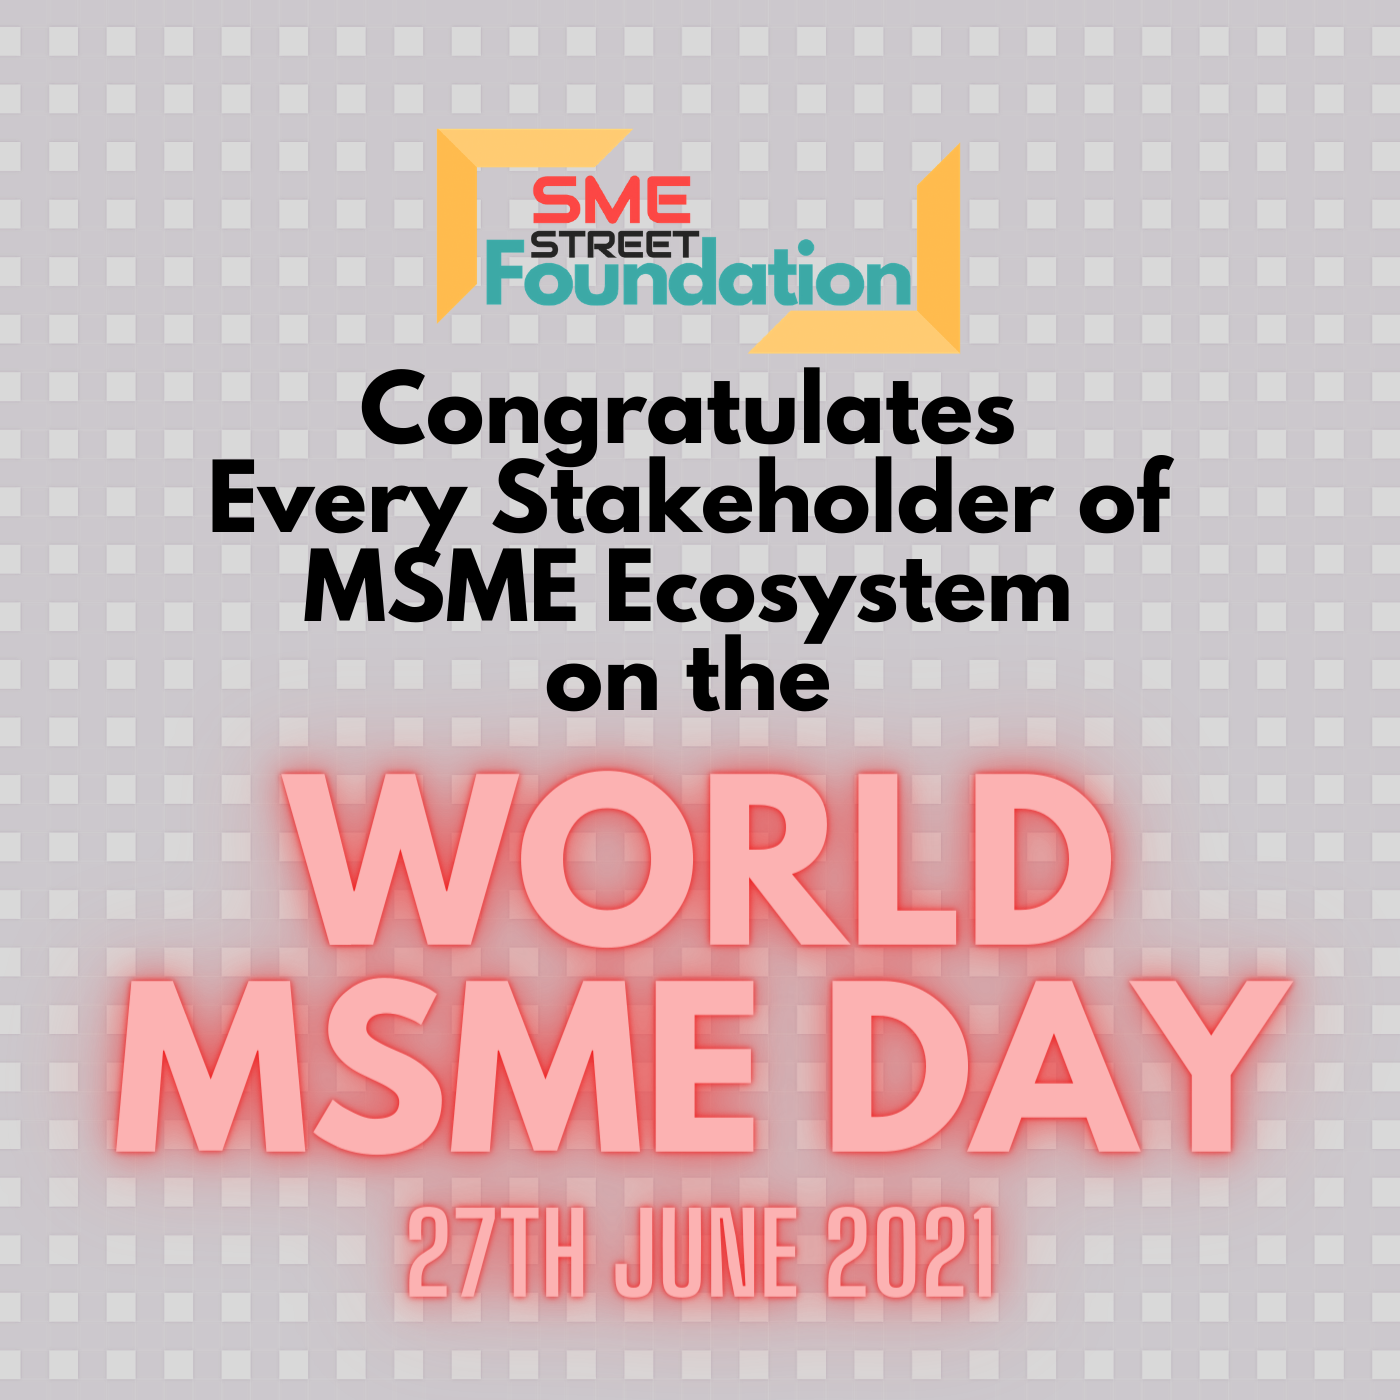 SMEStreet Foundation Celebrates World MSME Day With a Commitment to Add Value for Entrepreneurs Who Thrive to Exceed